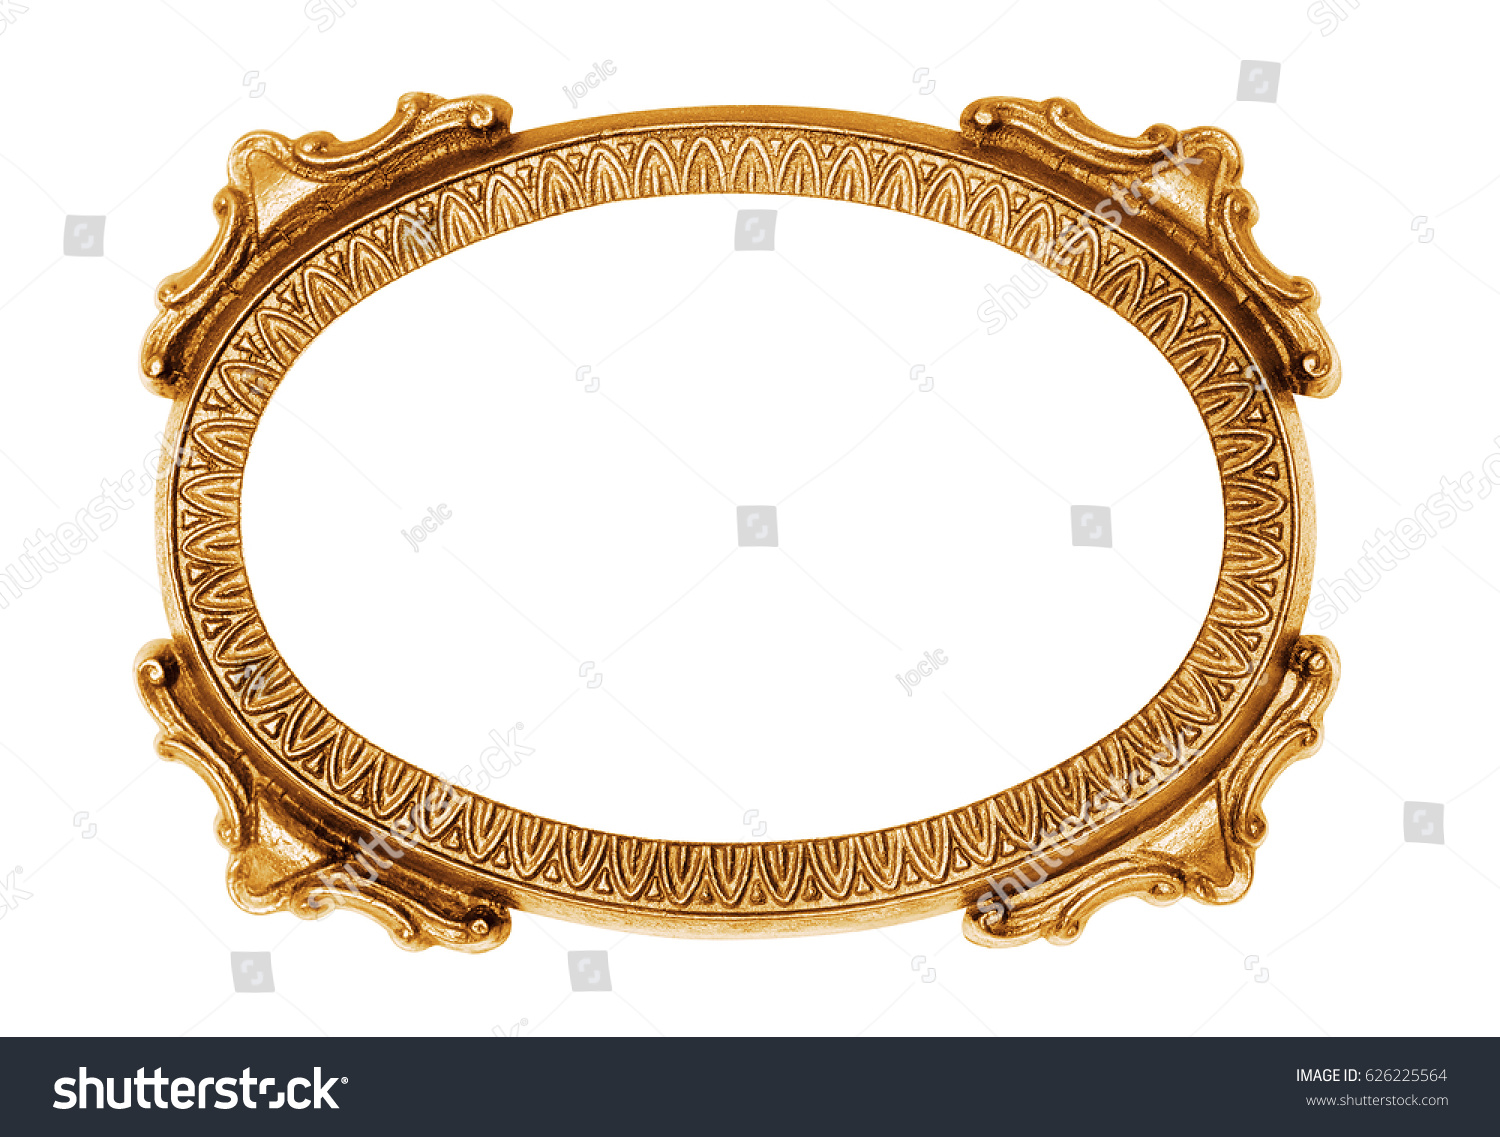 Gold Oval Vintage Frame Isolated On Stock Photo (Royalty Free ...